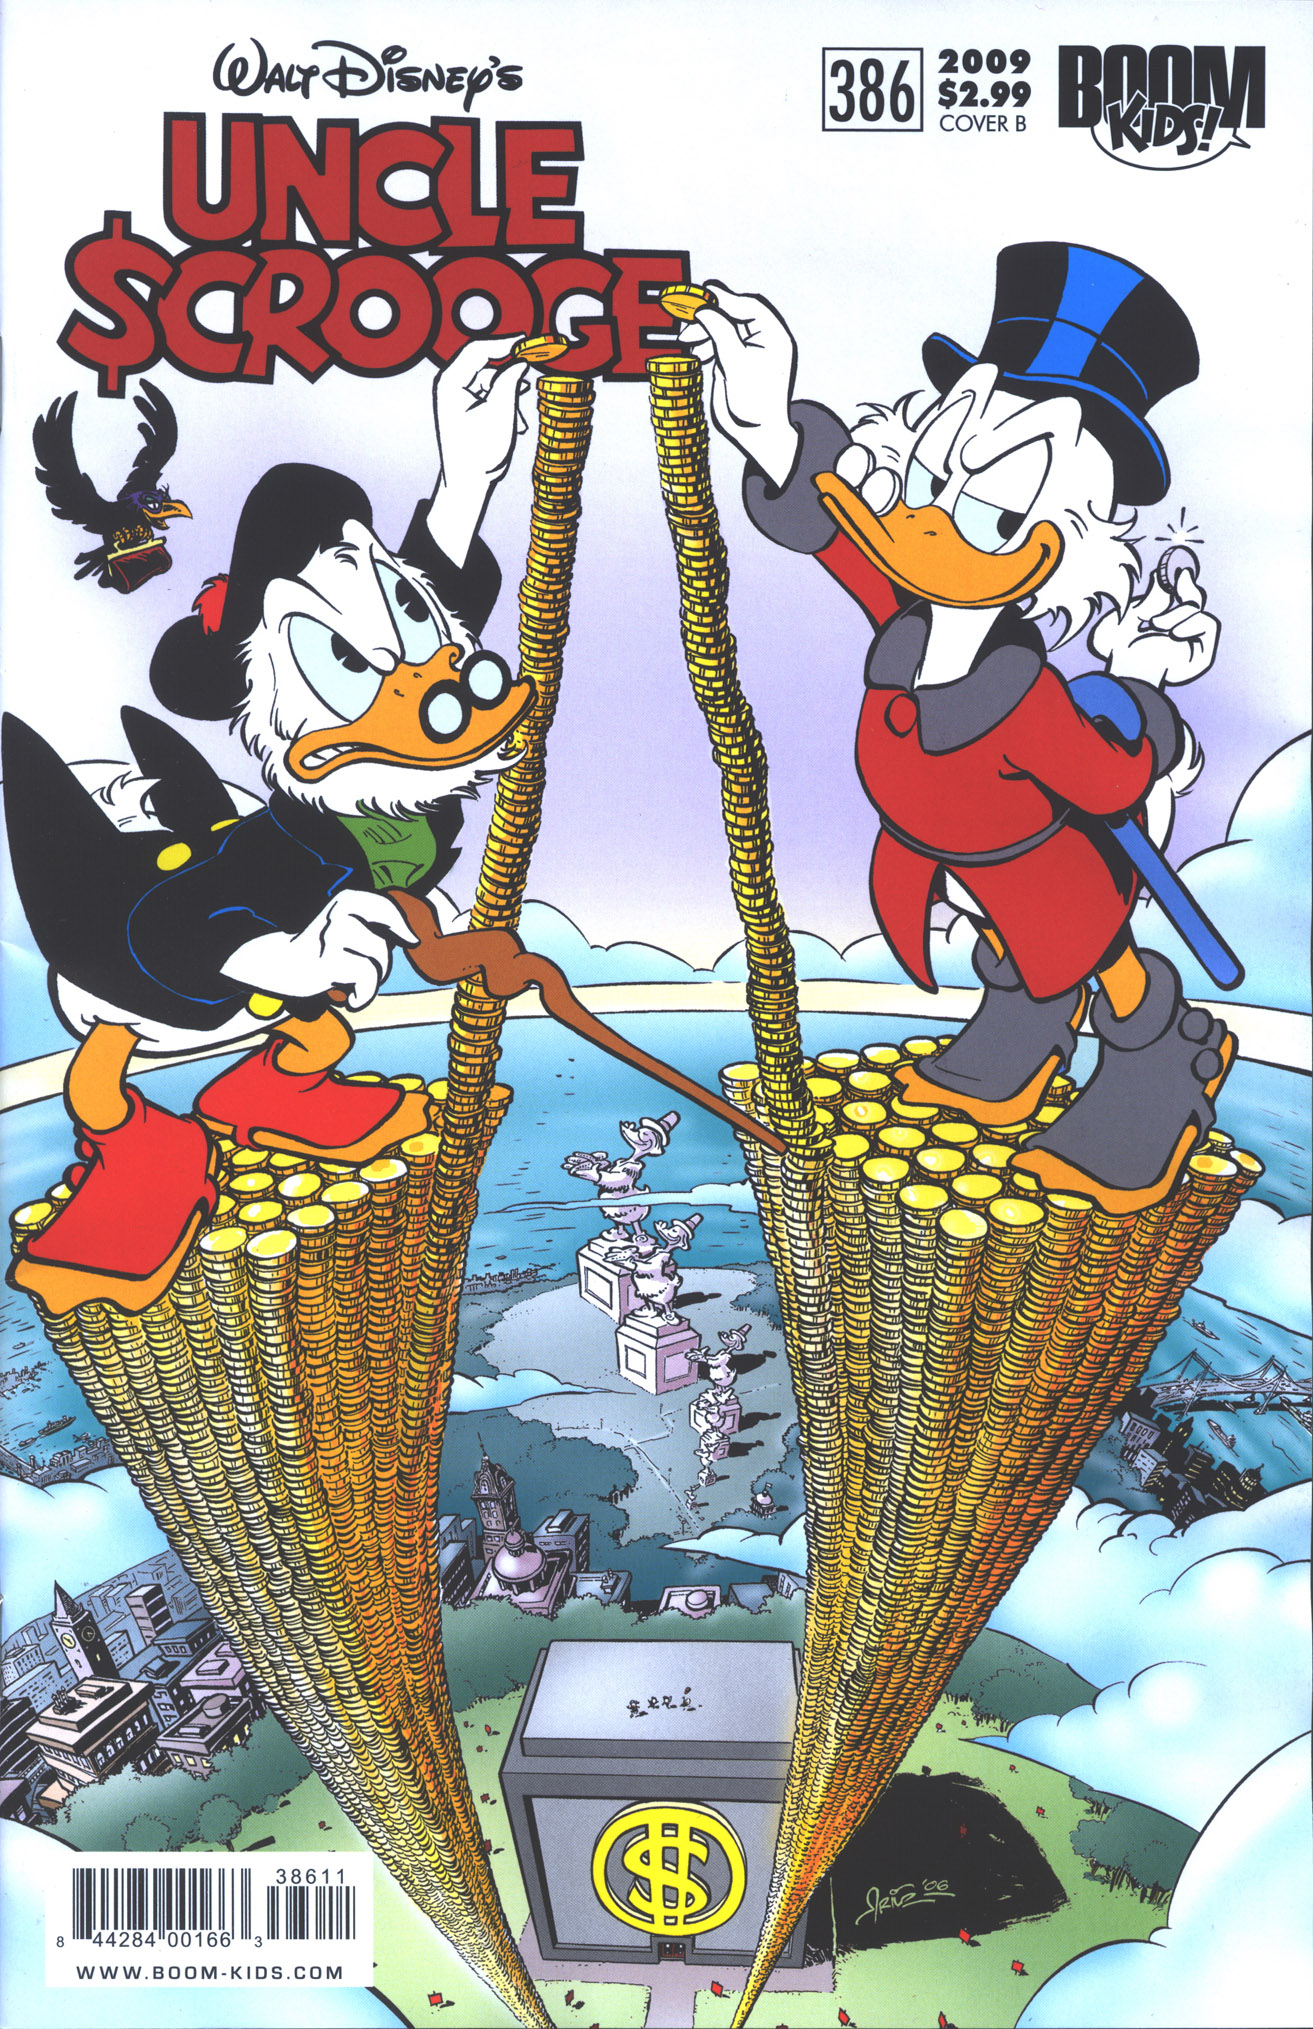 Read online Uncle Scrooge (1953) comic -  Issue #386 - 2